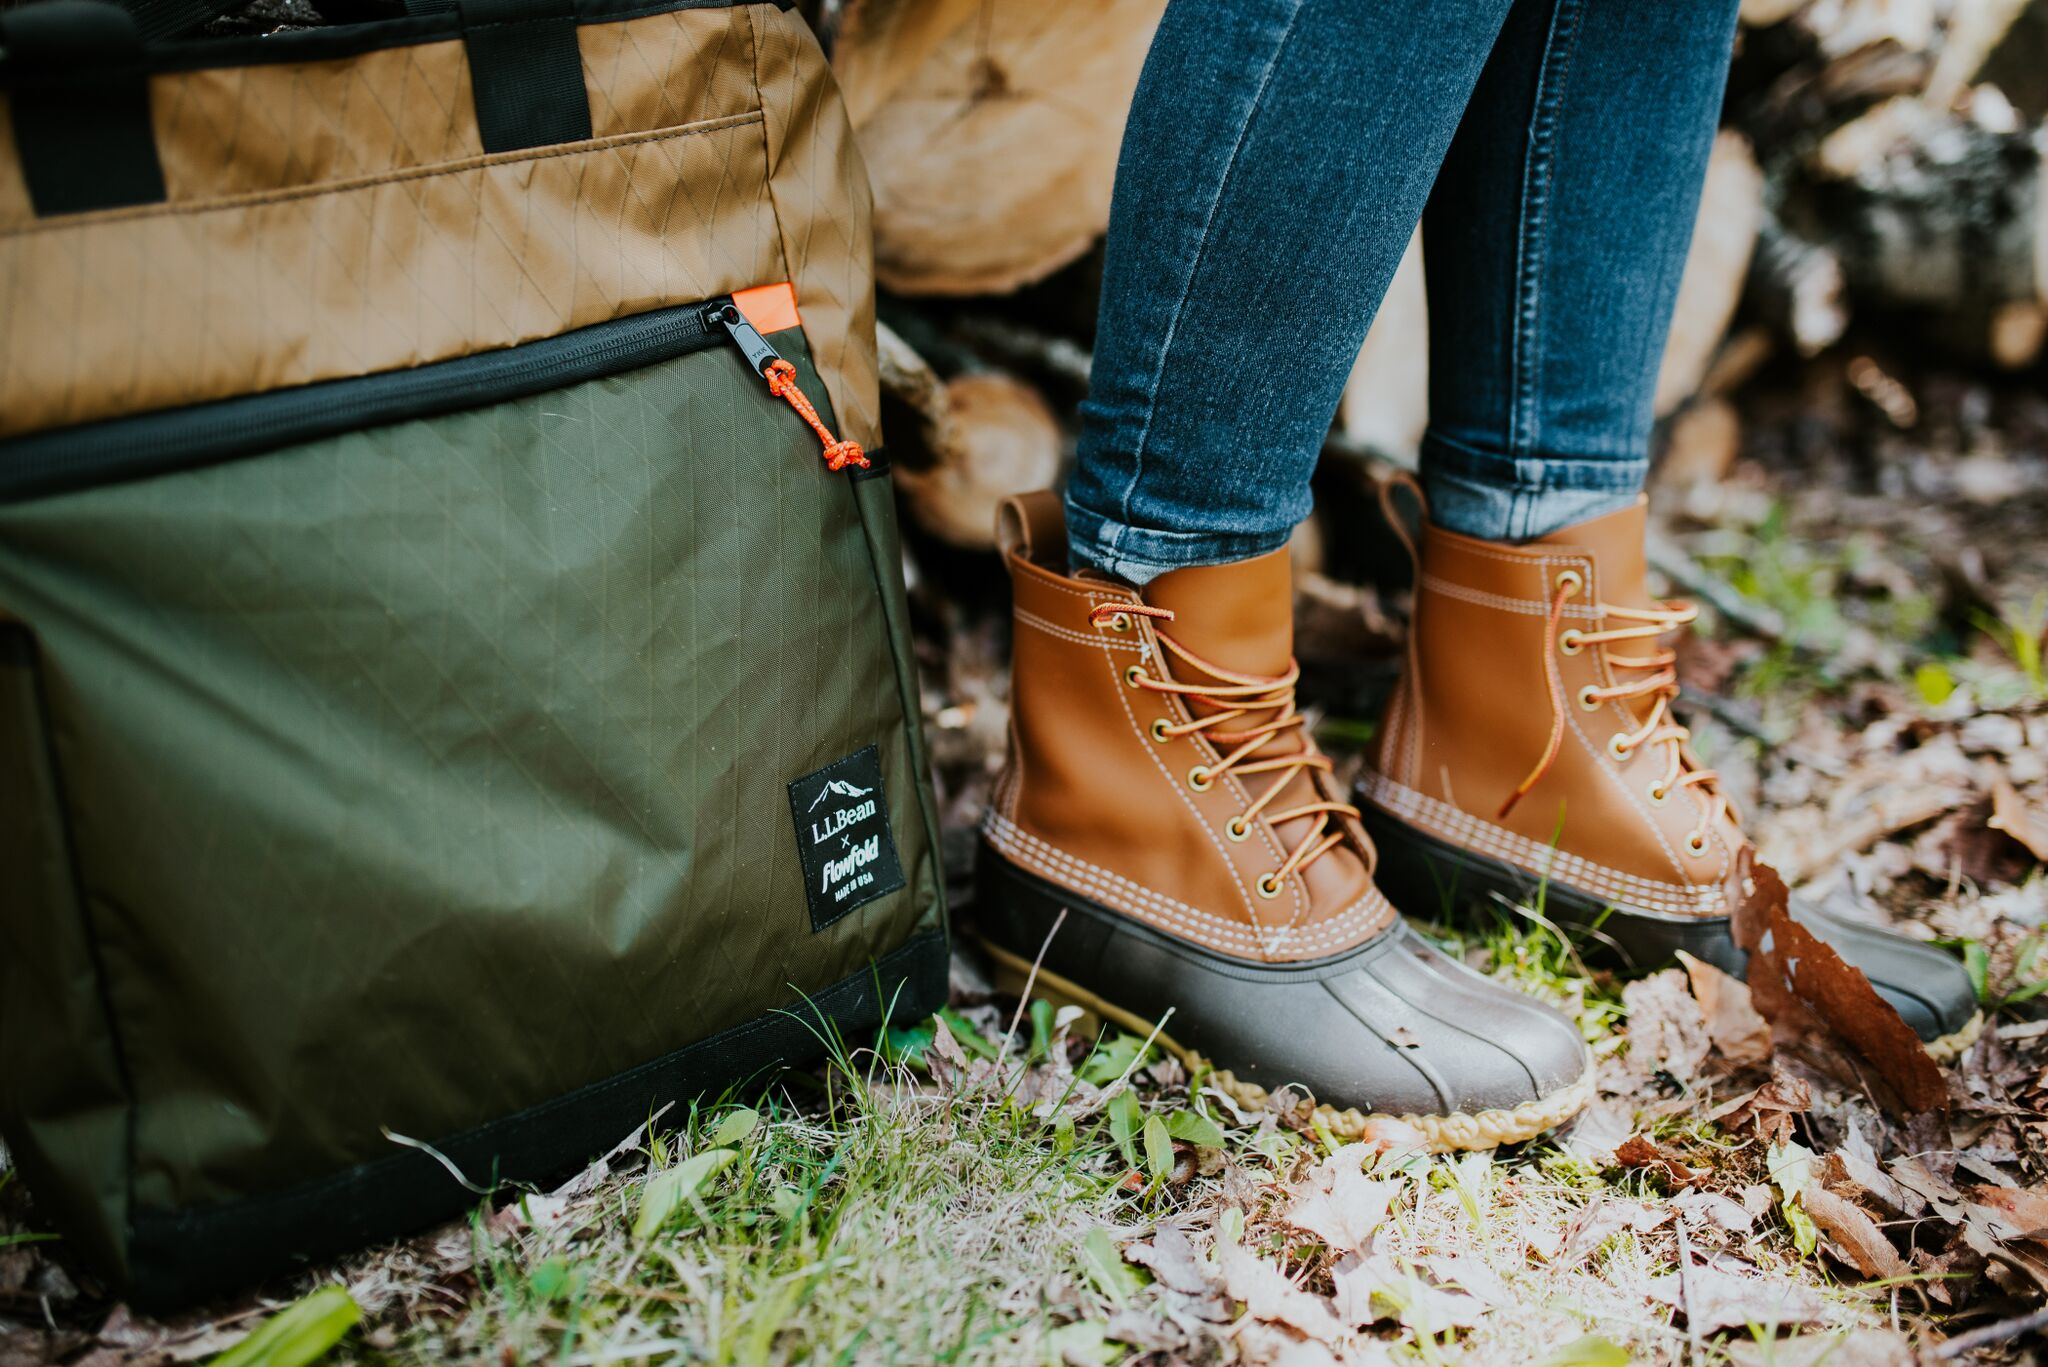 LL Bean x Flowfold - Gifts Made in the USA